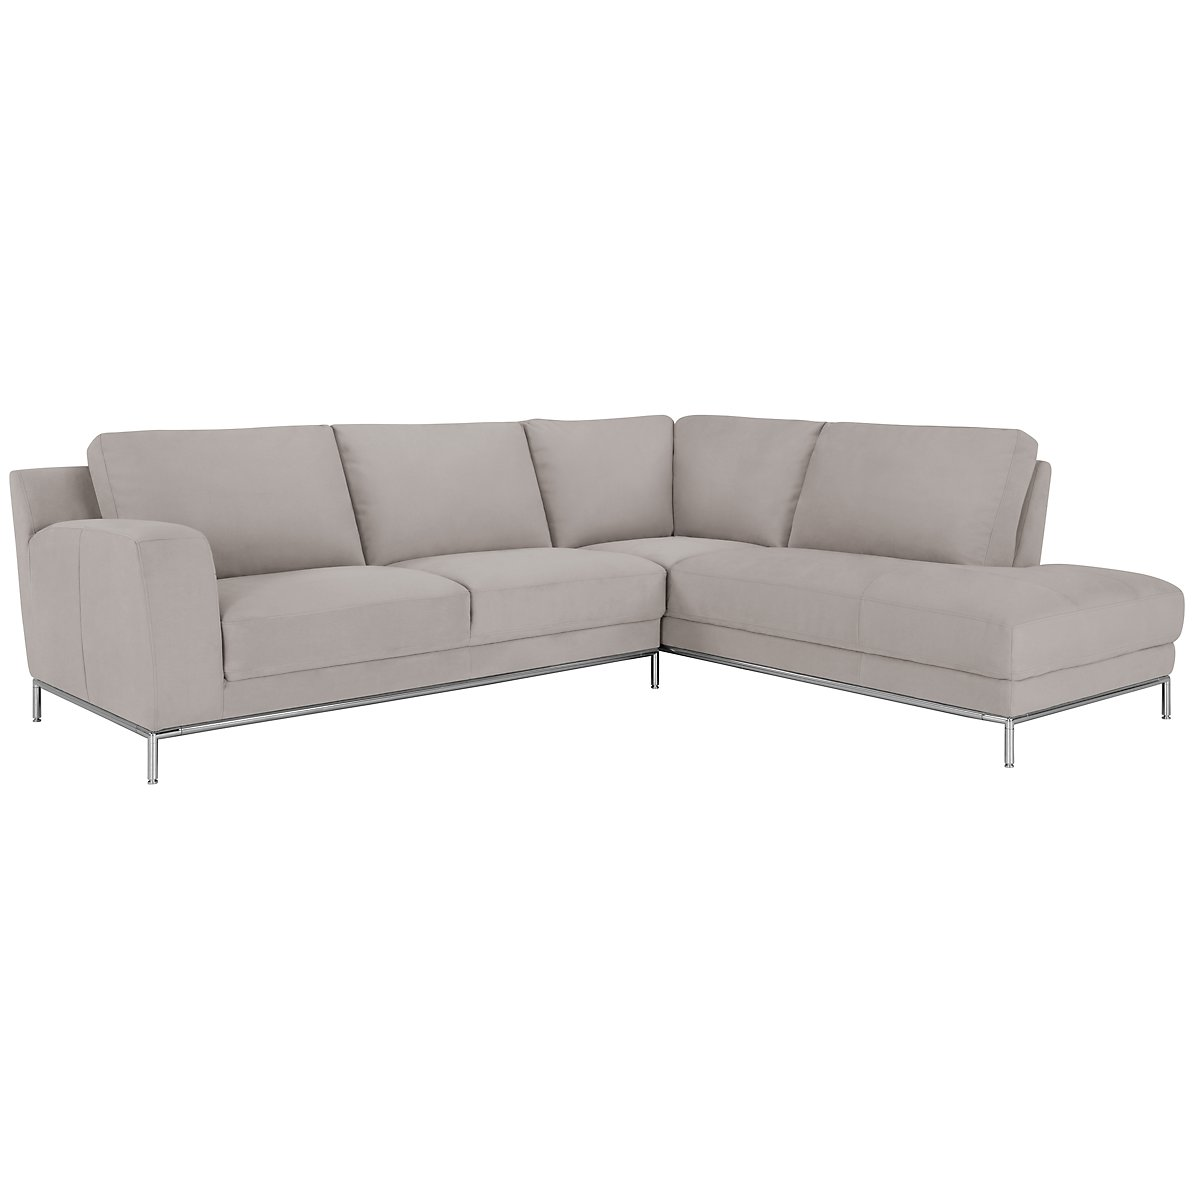 chaise room with living sofas rcwilley contemporary view furniture couch gray sofa fabric laguna willey jsp rc casual